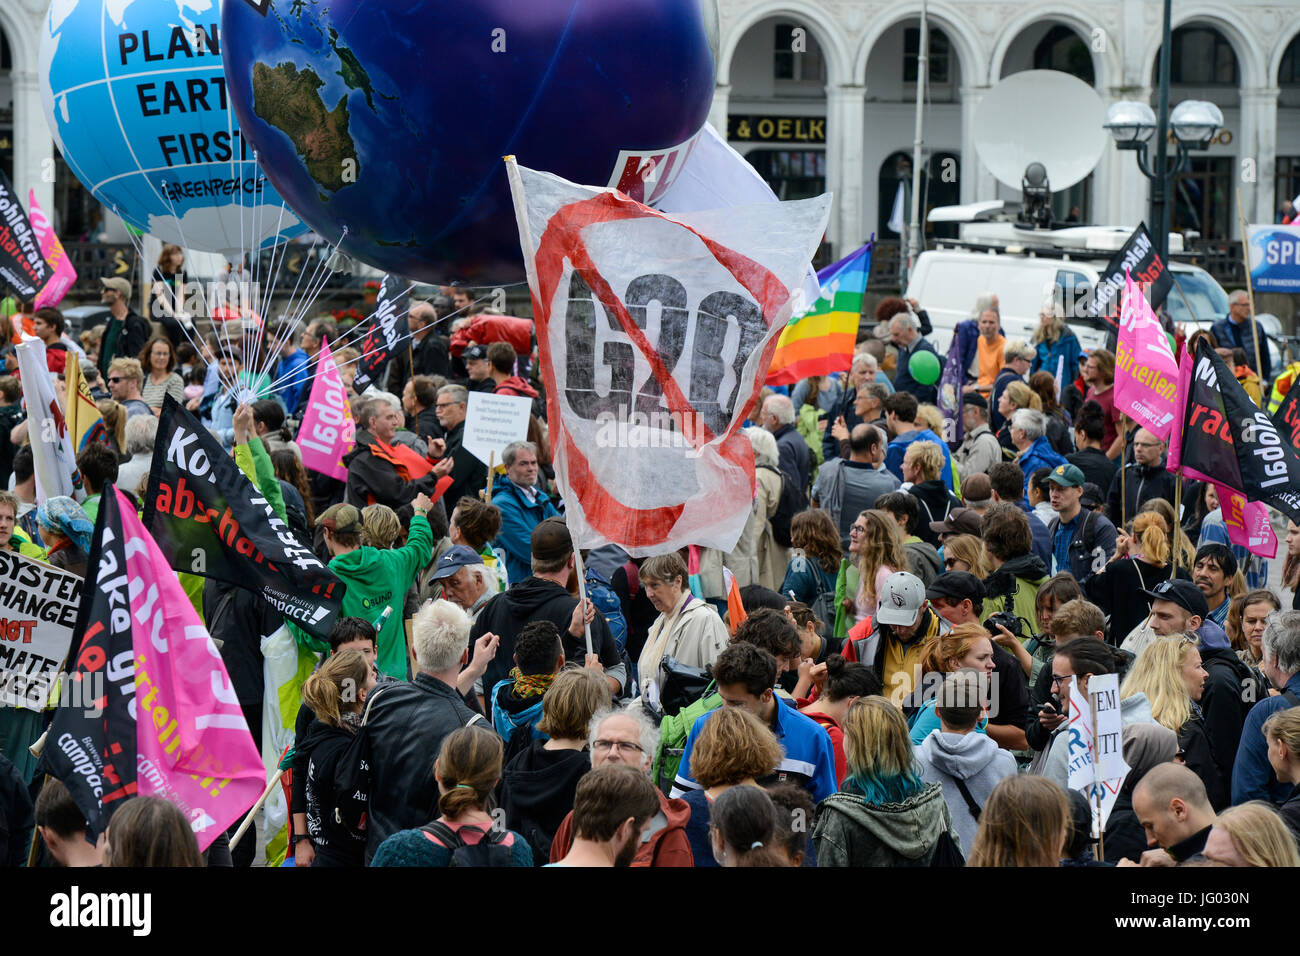 Hamburg, Germany. 02nd July, 2017. protest rally against G-20 summit in july 2017 / DEUTSCHLAND, Hamburg, Protest - Stock Image